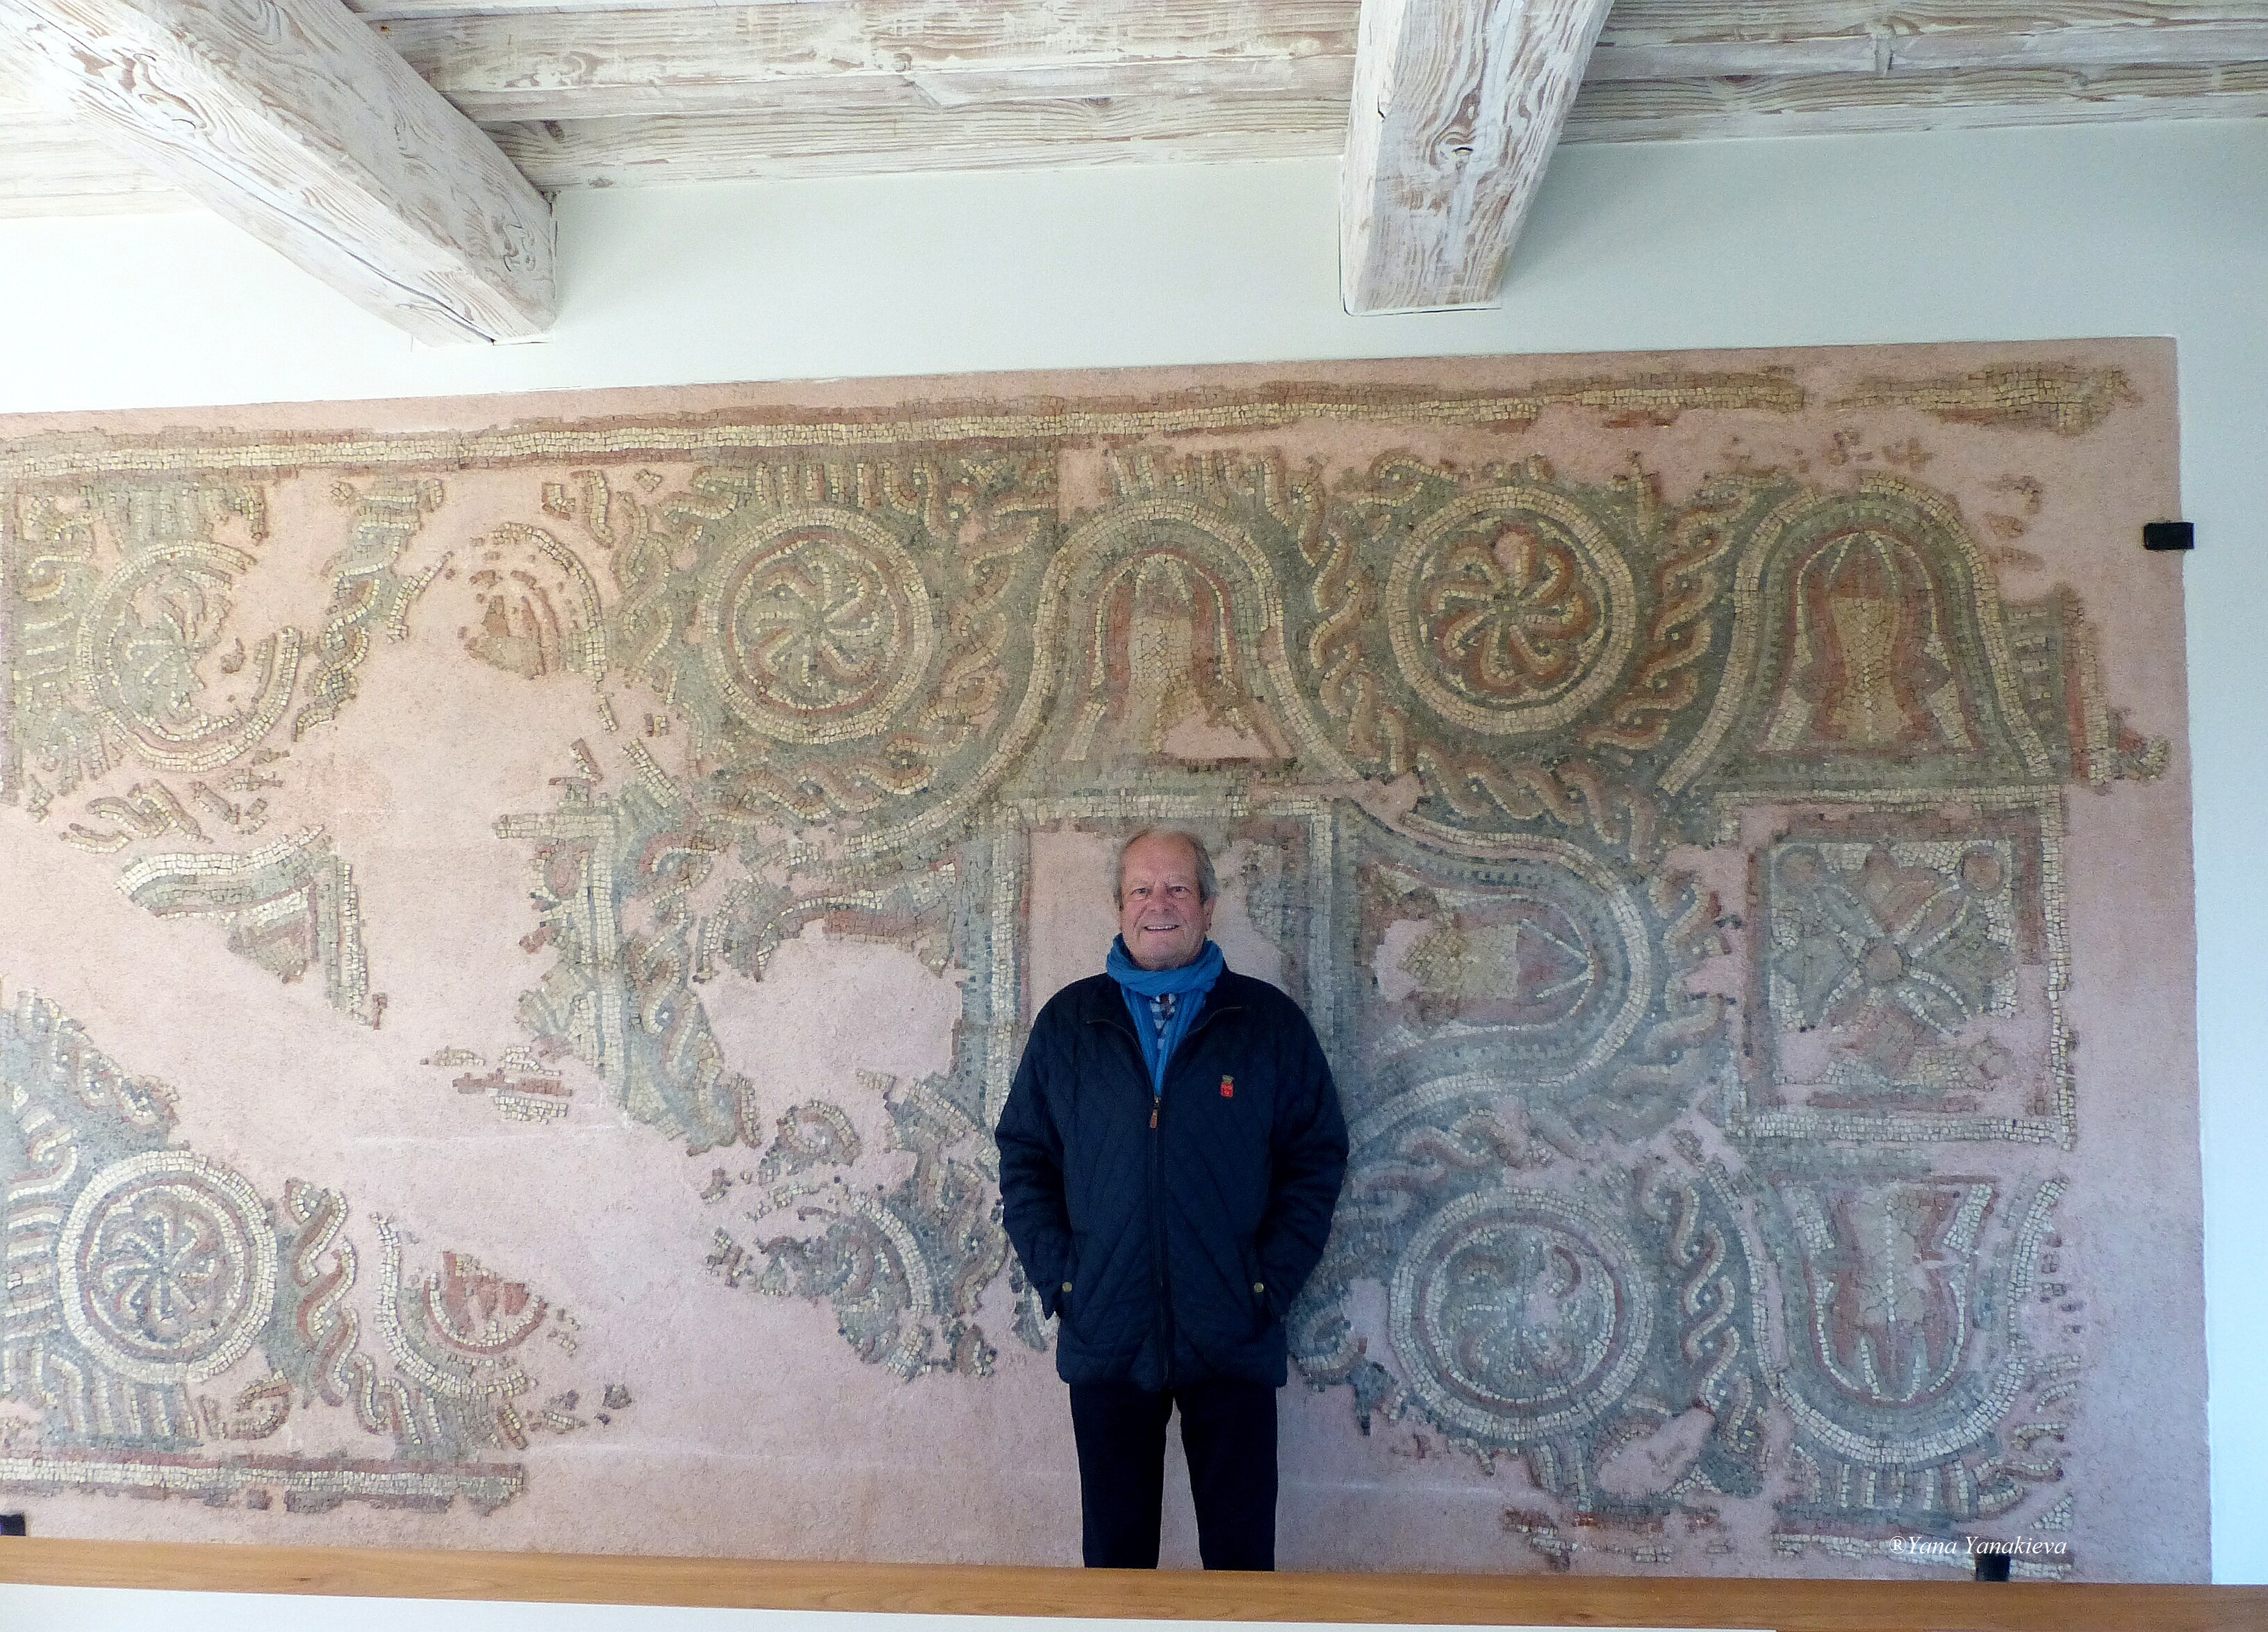 M.Léo DE MALET in front of the mosaic placed in the Tasting hall, Château La Gaffelière, 27/11/18